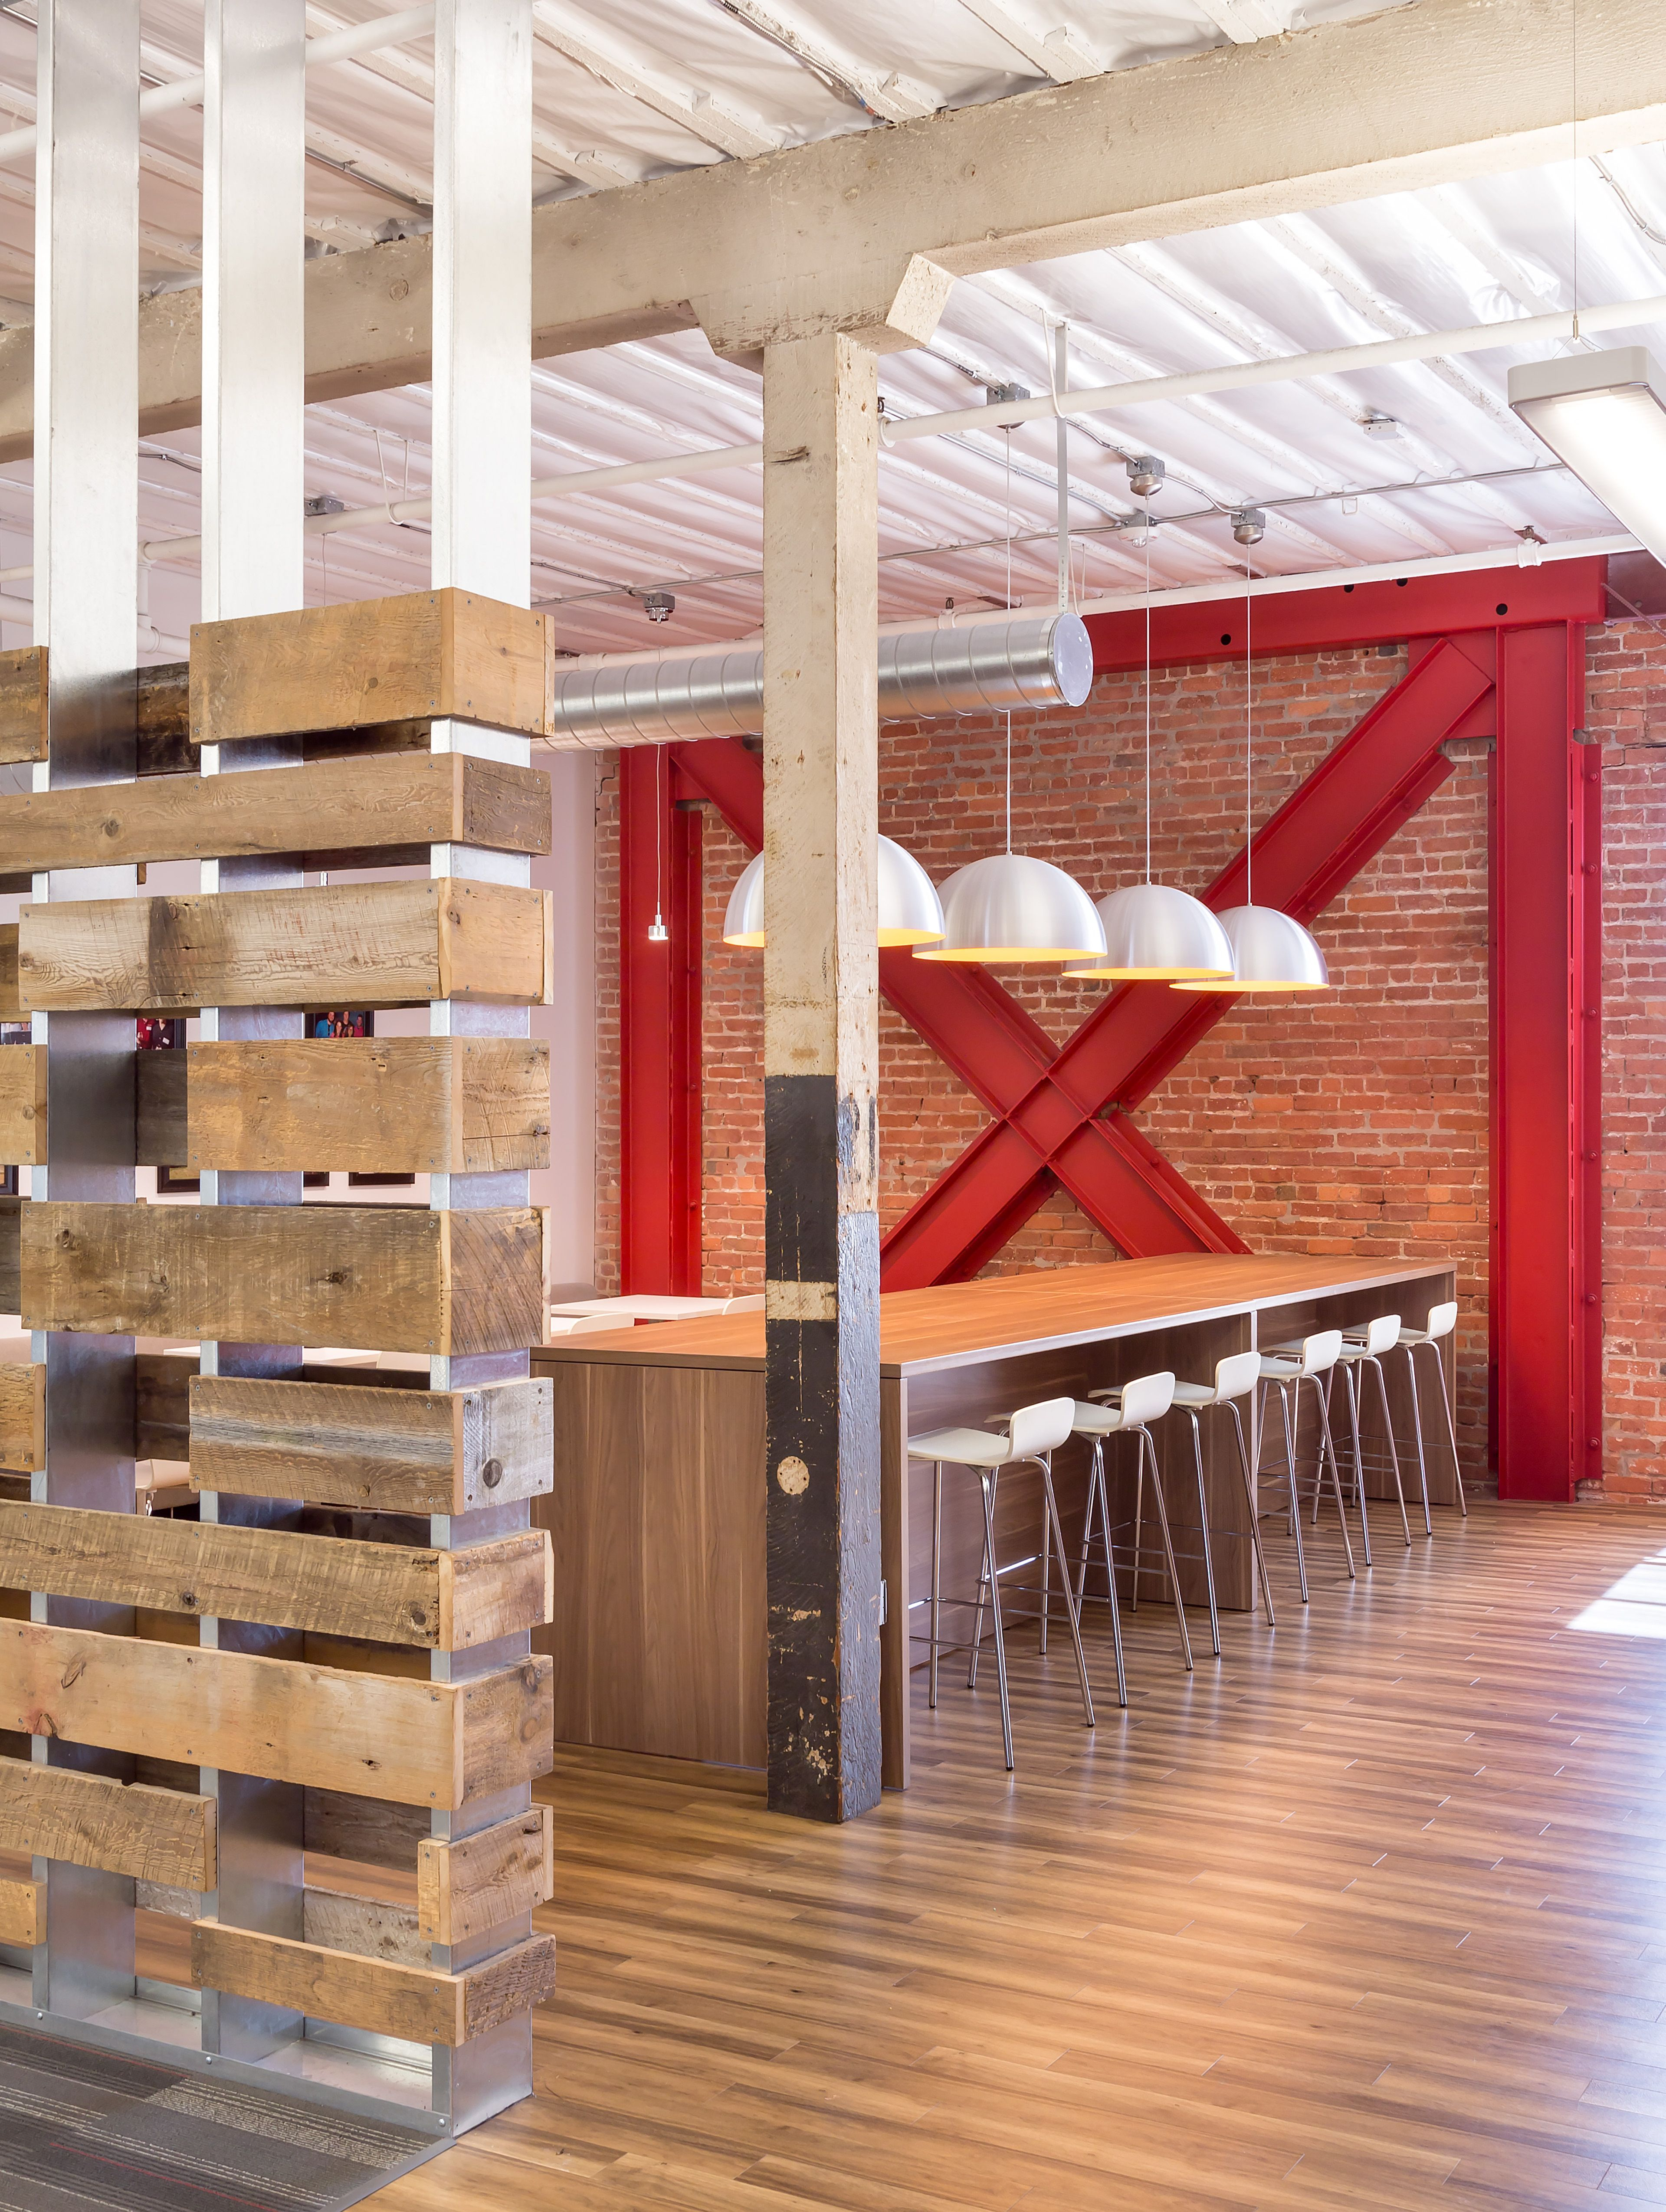 An Open Office Environment With Original Brick Walls And Wood